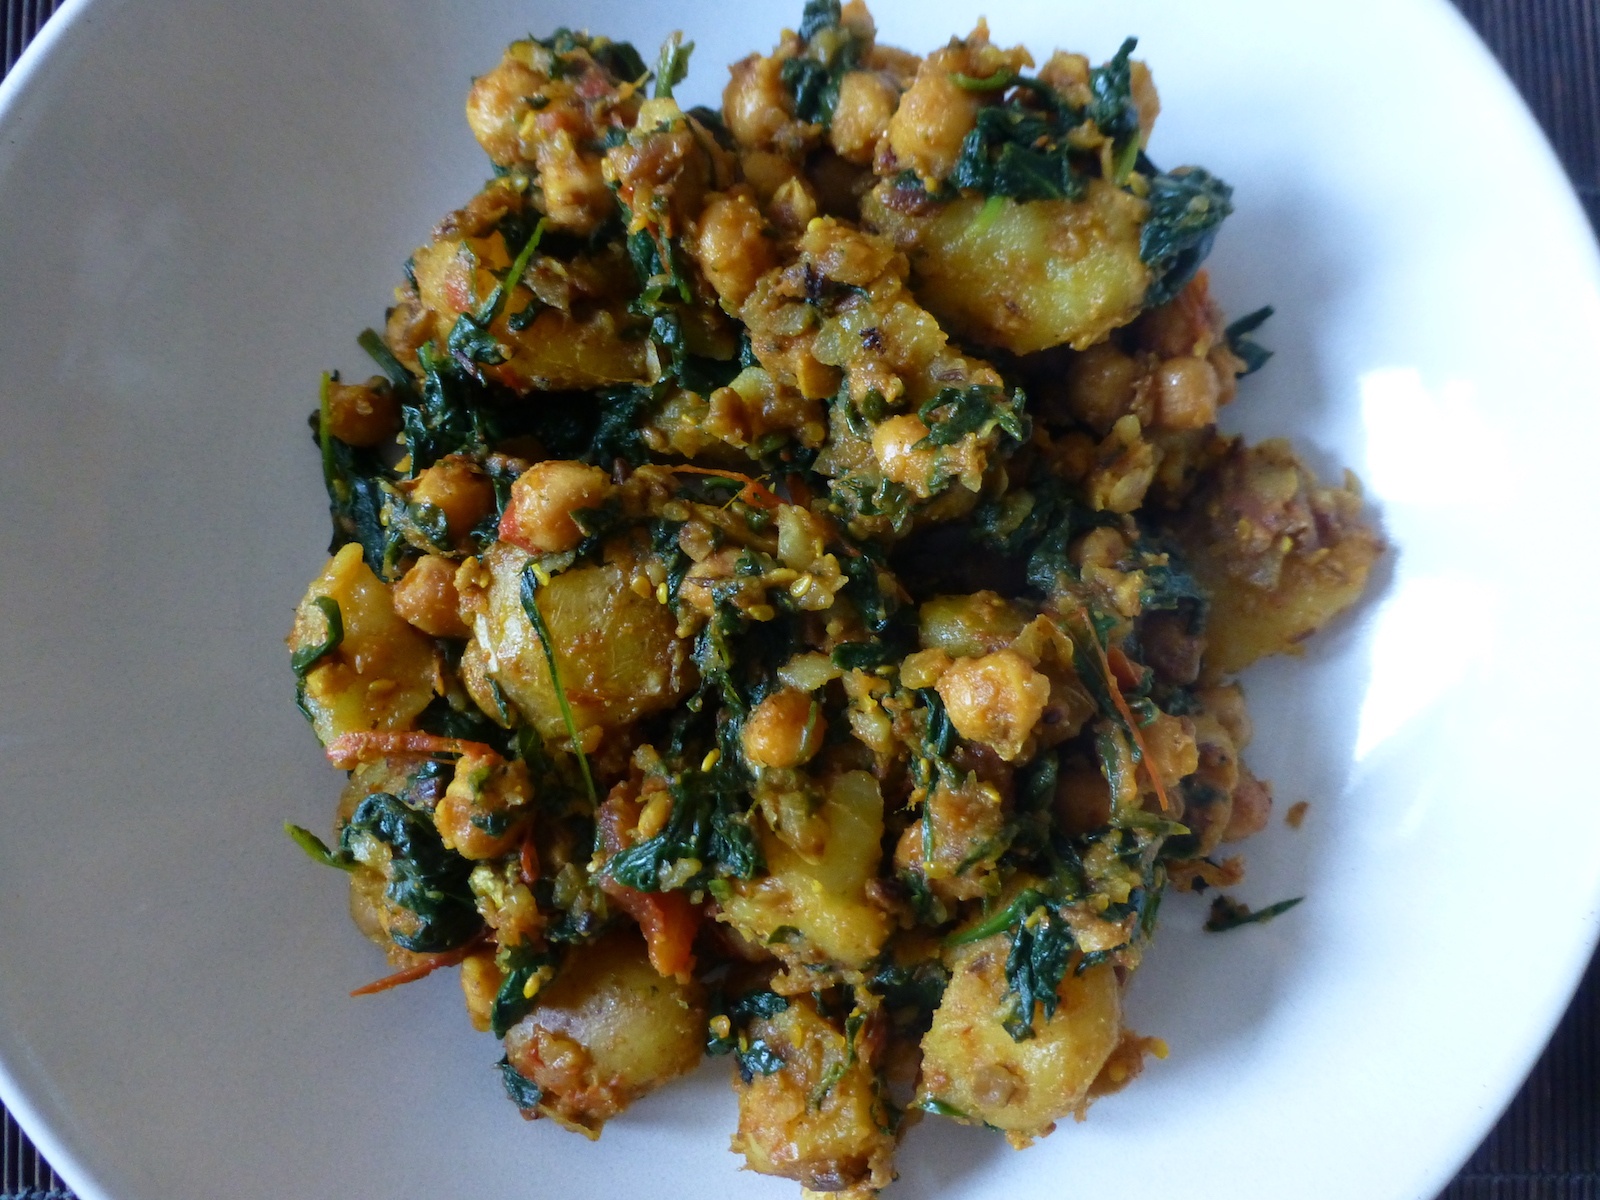 Curry of potatoes, spinach and chickpeas